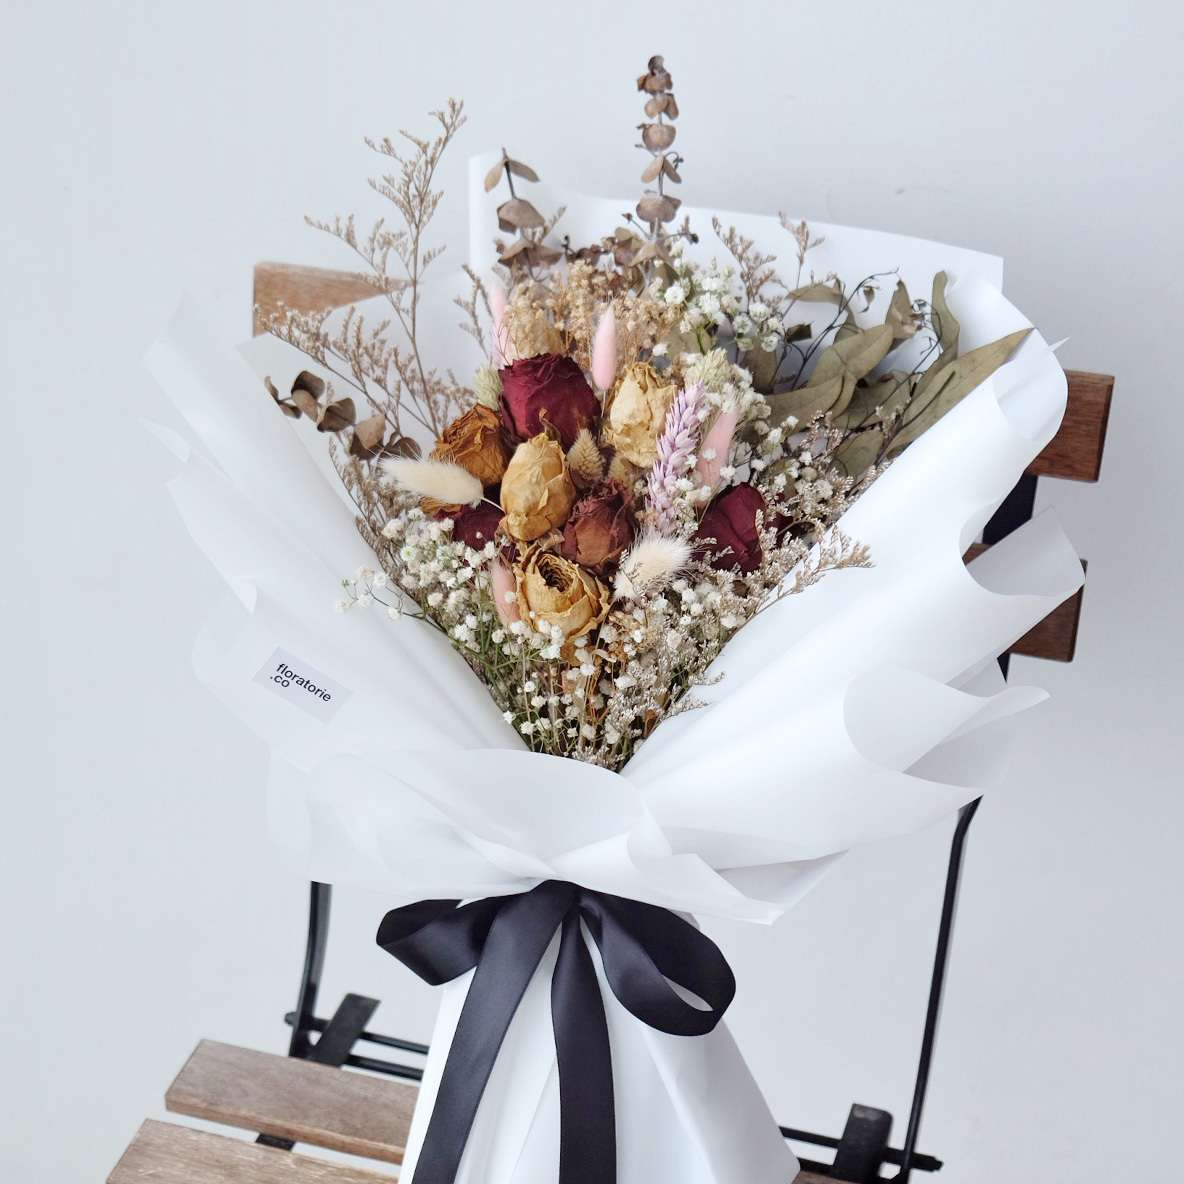 Rustic dried flower bouquet floratorie rustic dried flower bouquet izmirmasajfo Image collections